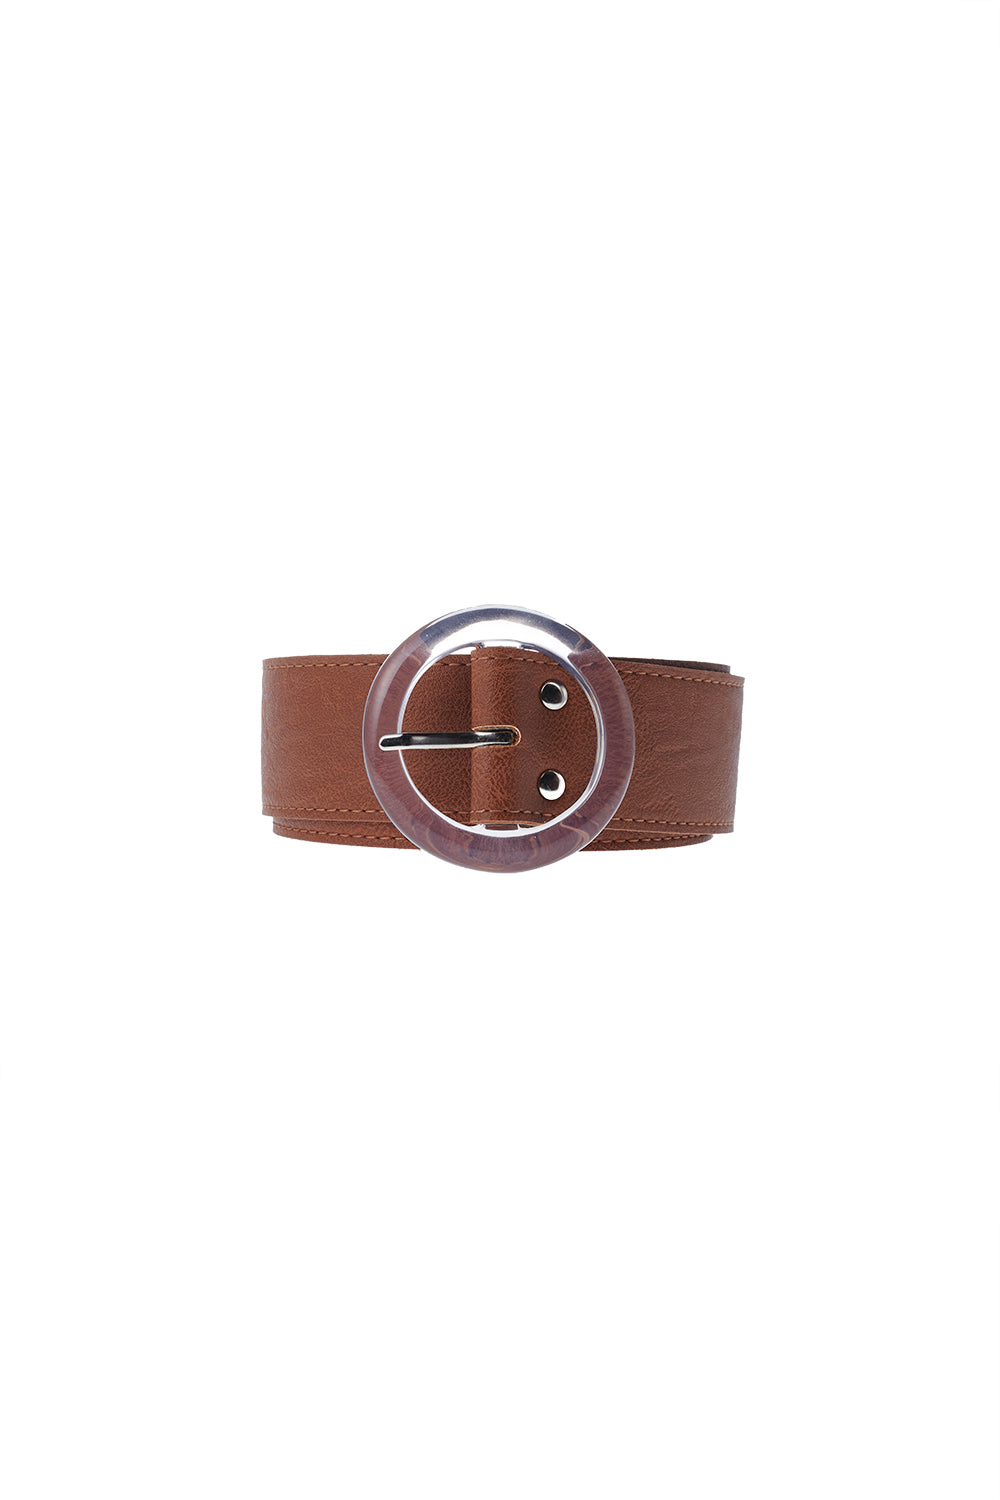 Glass Buckle Belt-Camel